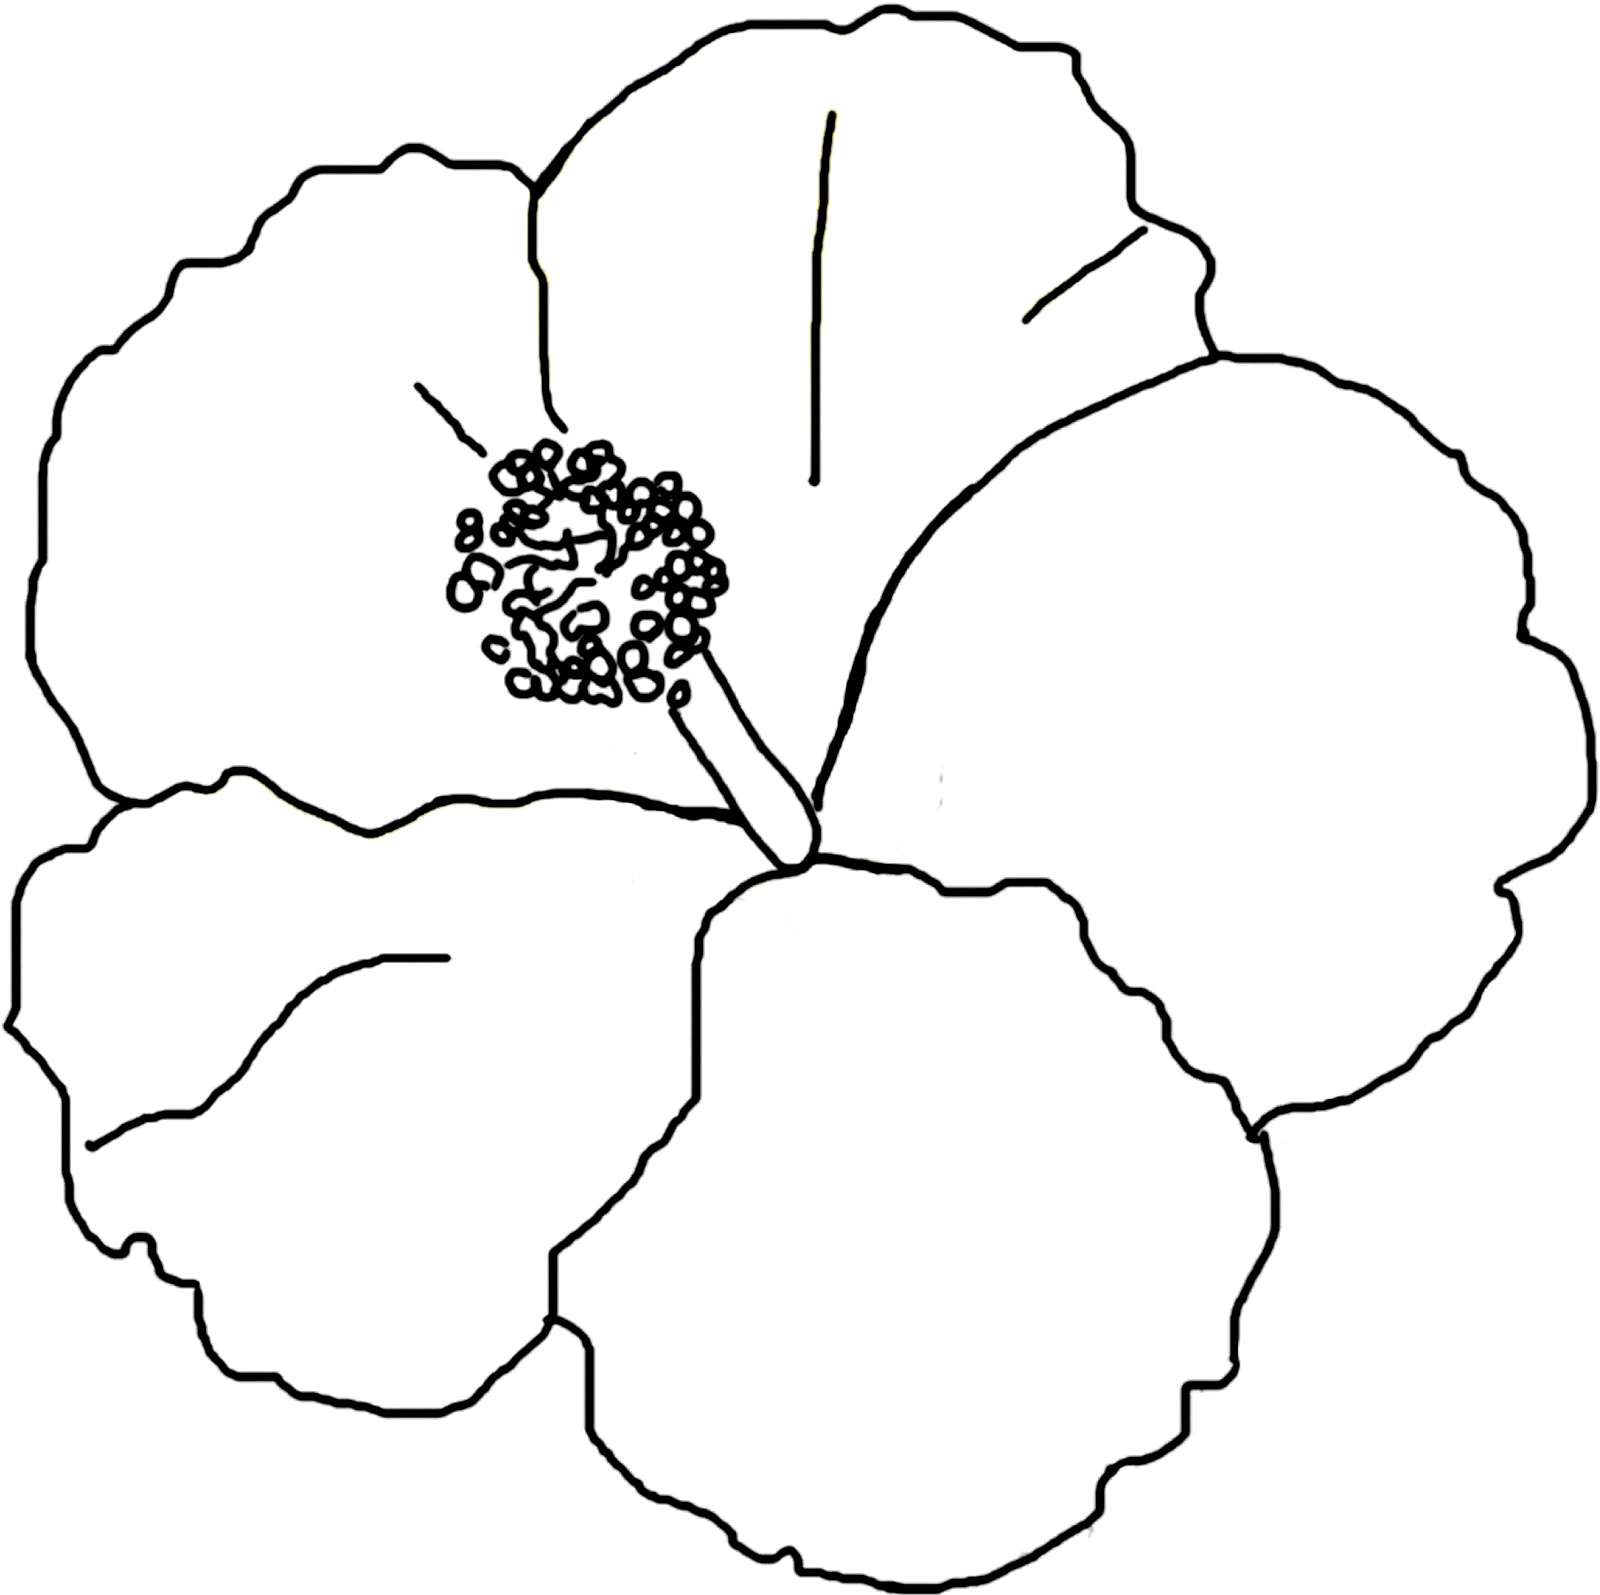 hibiscus coloring page hibiscus flower coloring pages download and print coloring hibiscus page